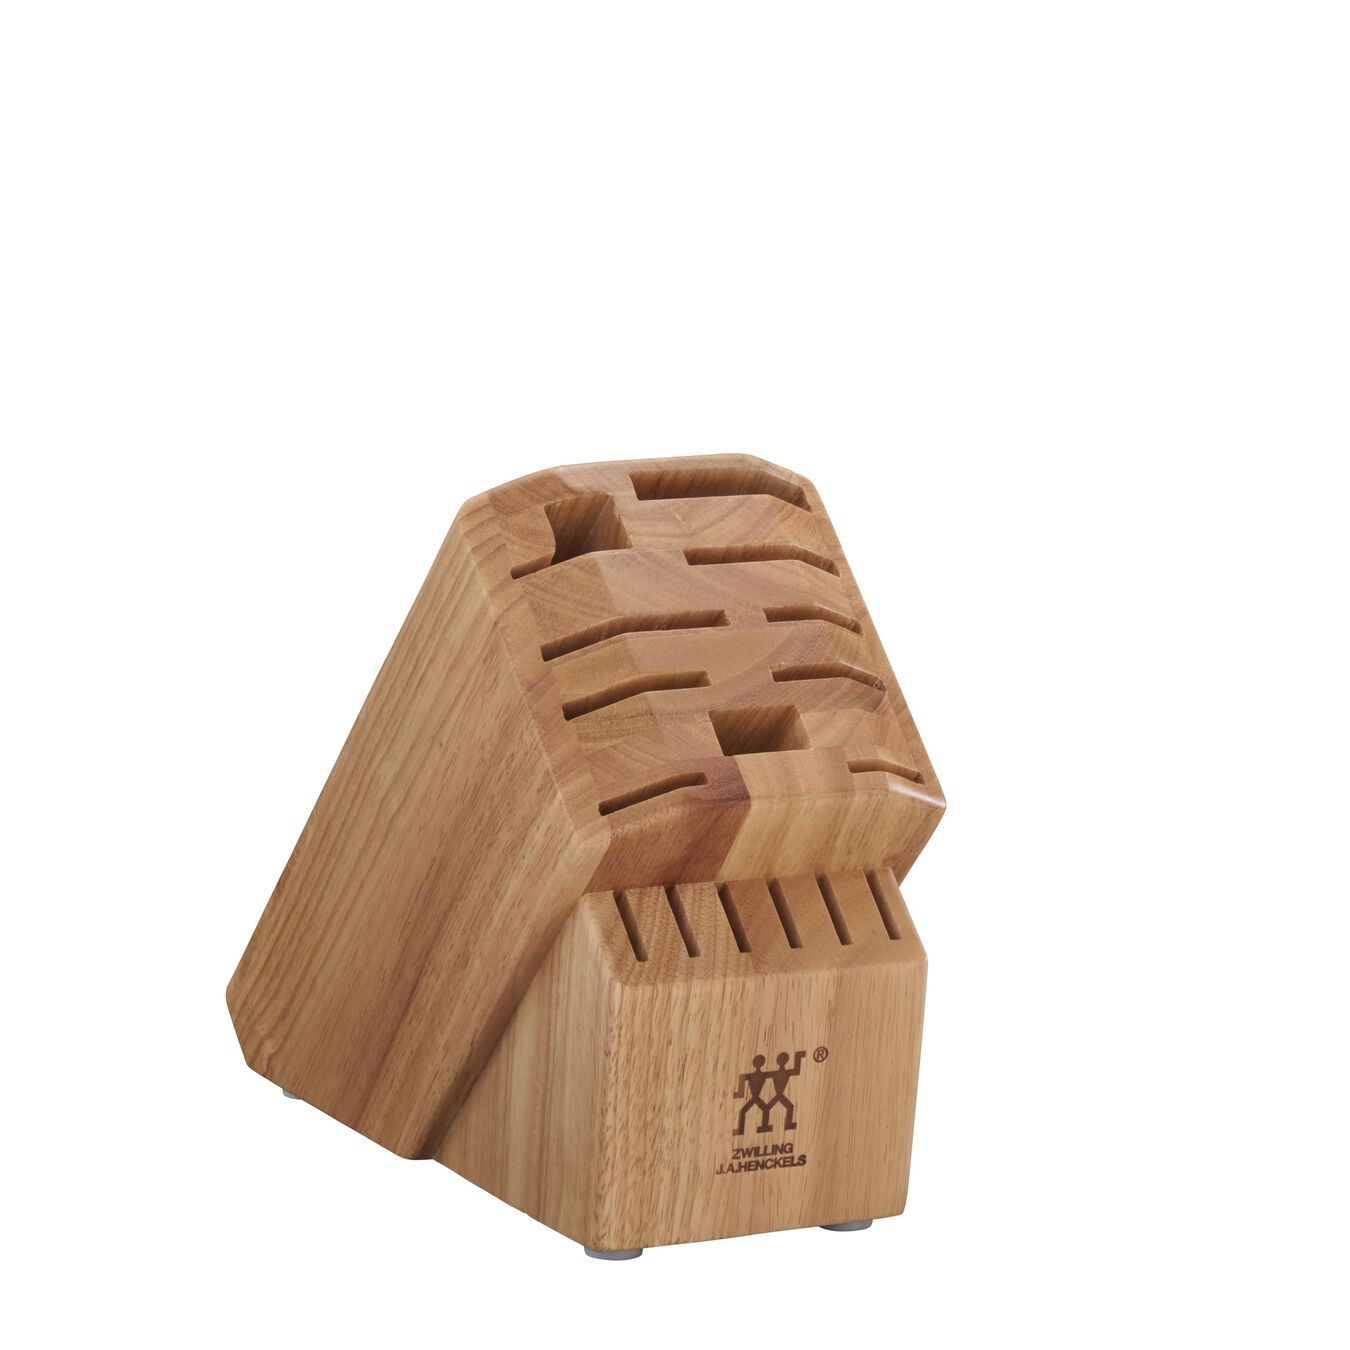 Rubberwood Natural 16-slot block,,large 1